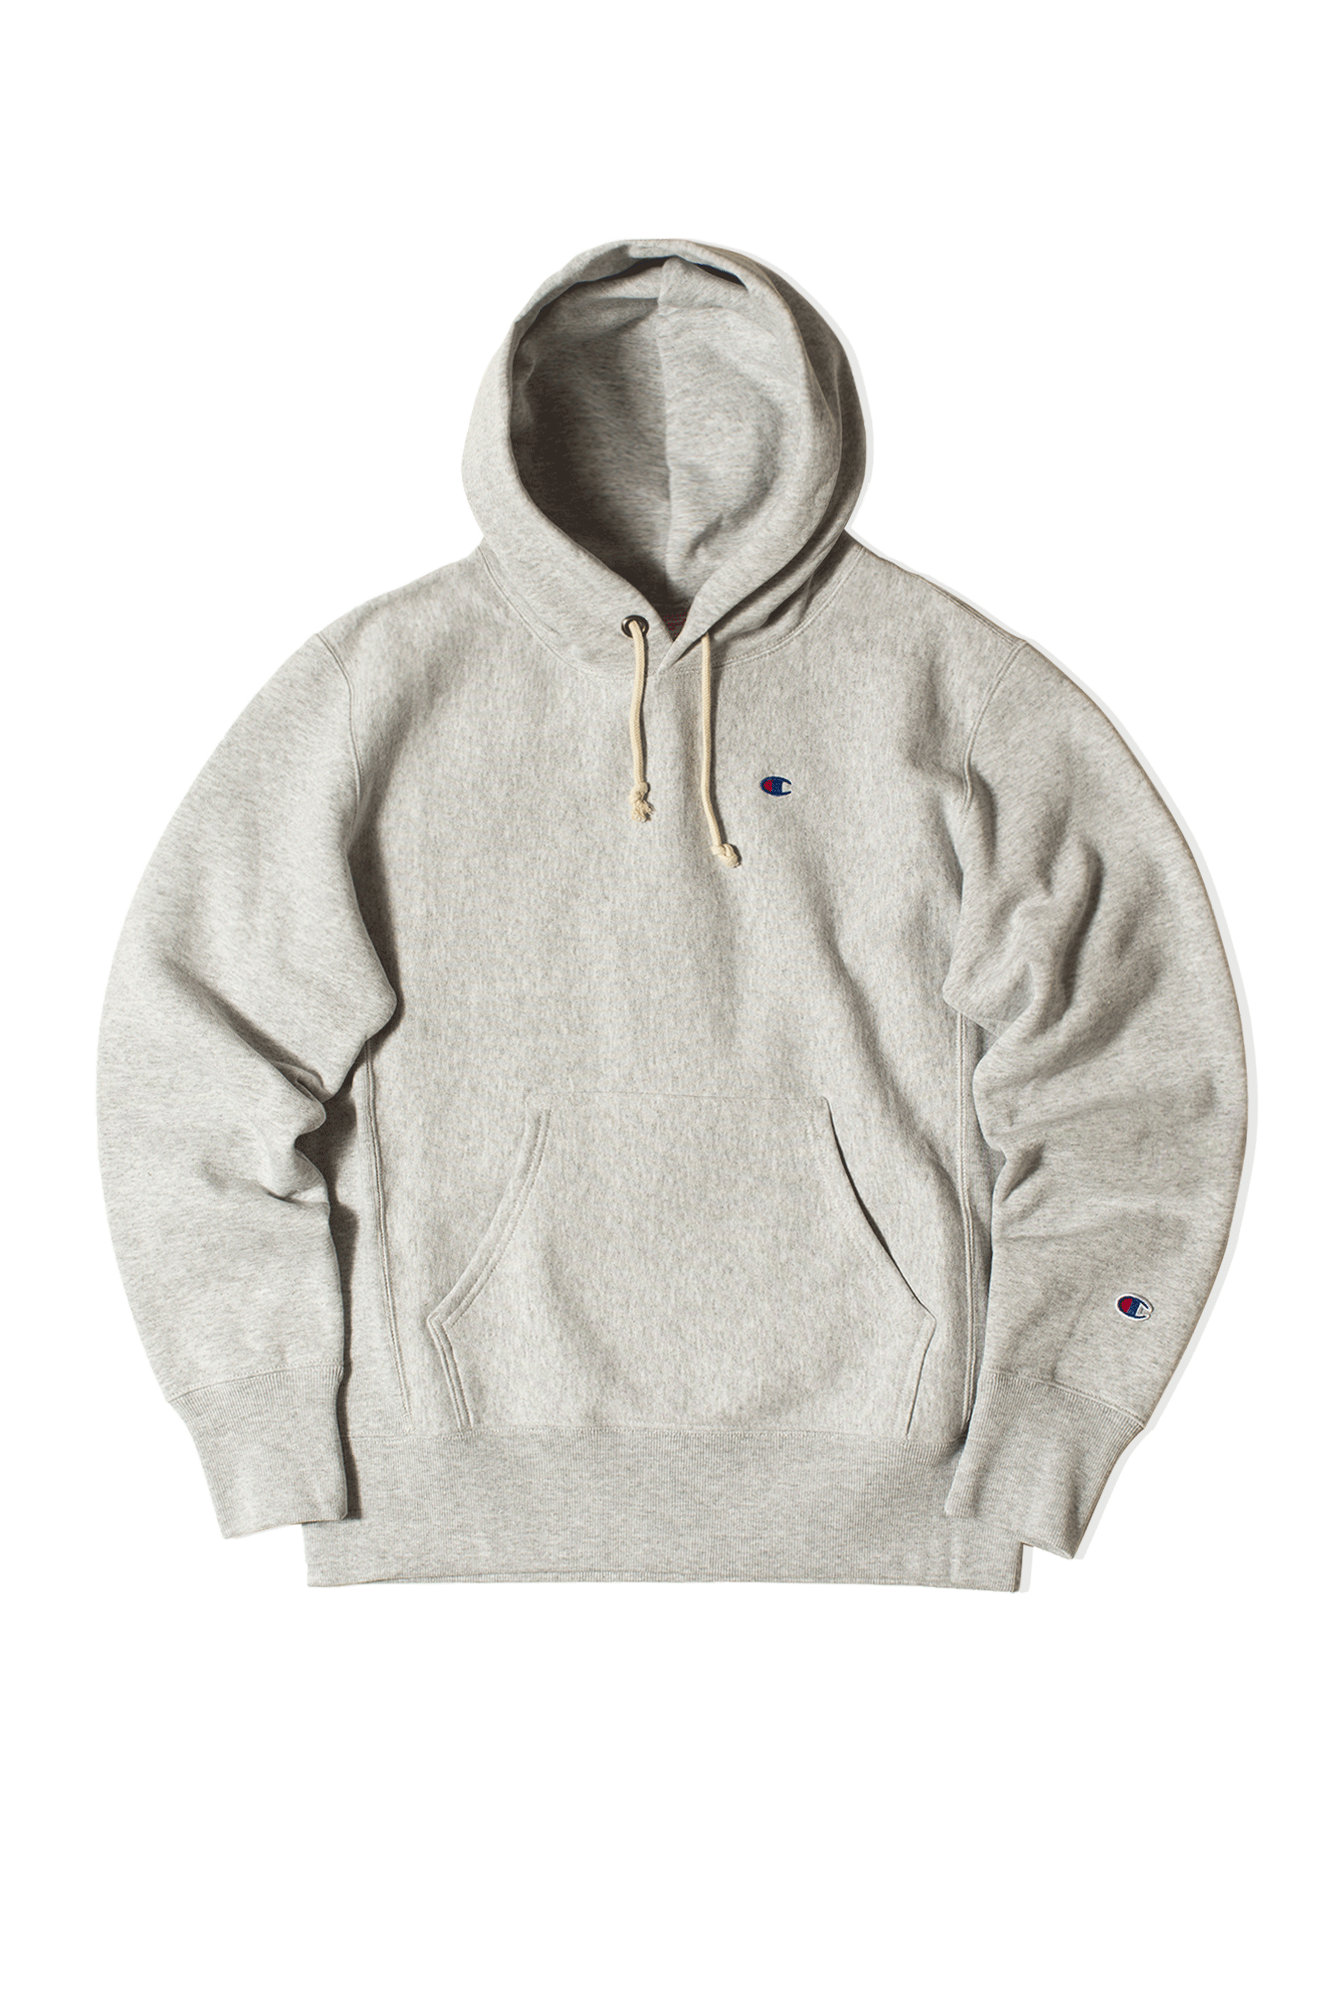 Champion Hooded sweatshirts Hooded sweatshirt Grey 214675#000#EM004#M - One Block Down